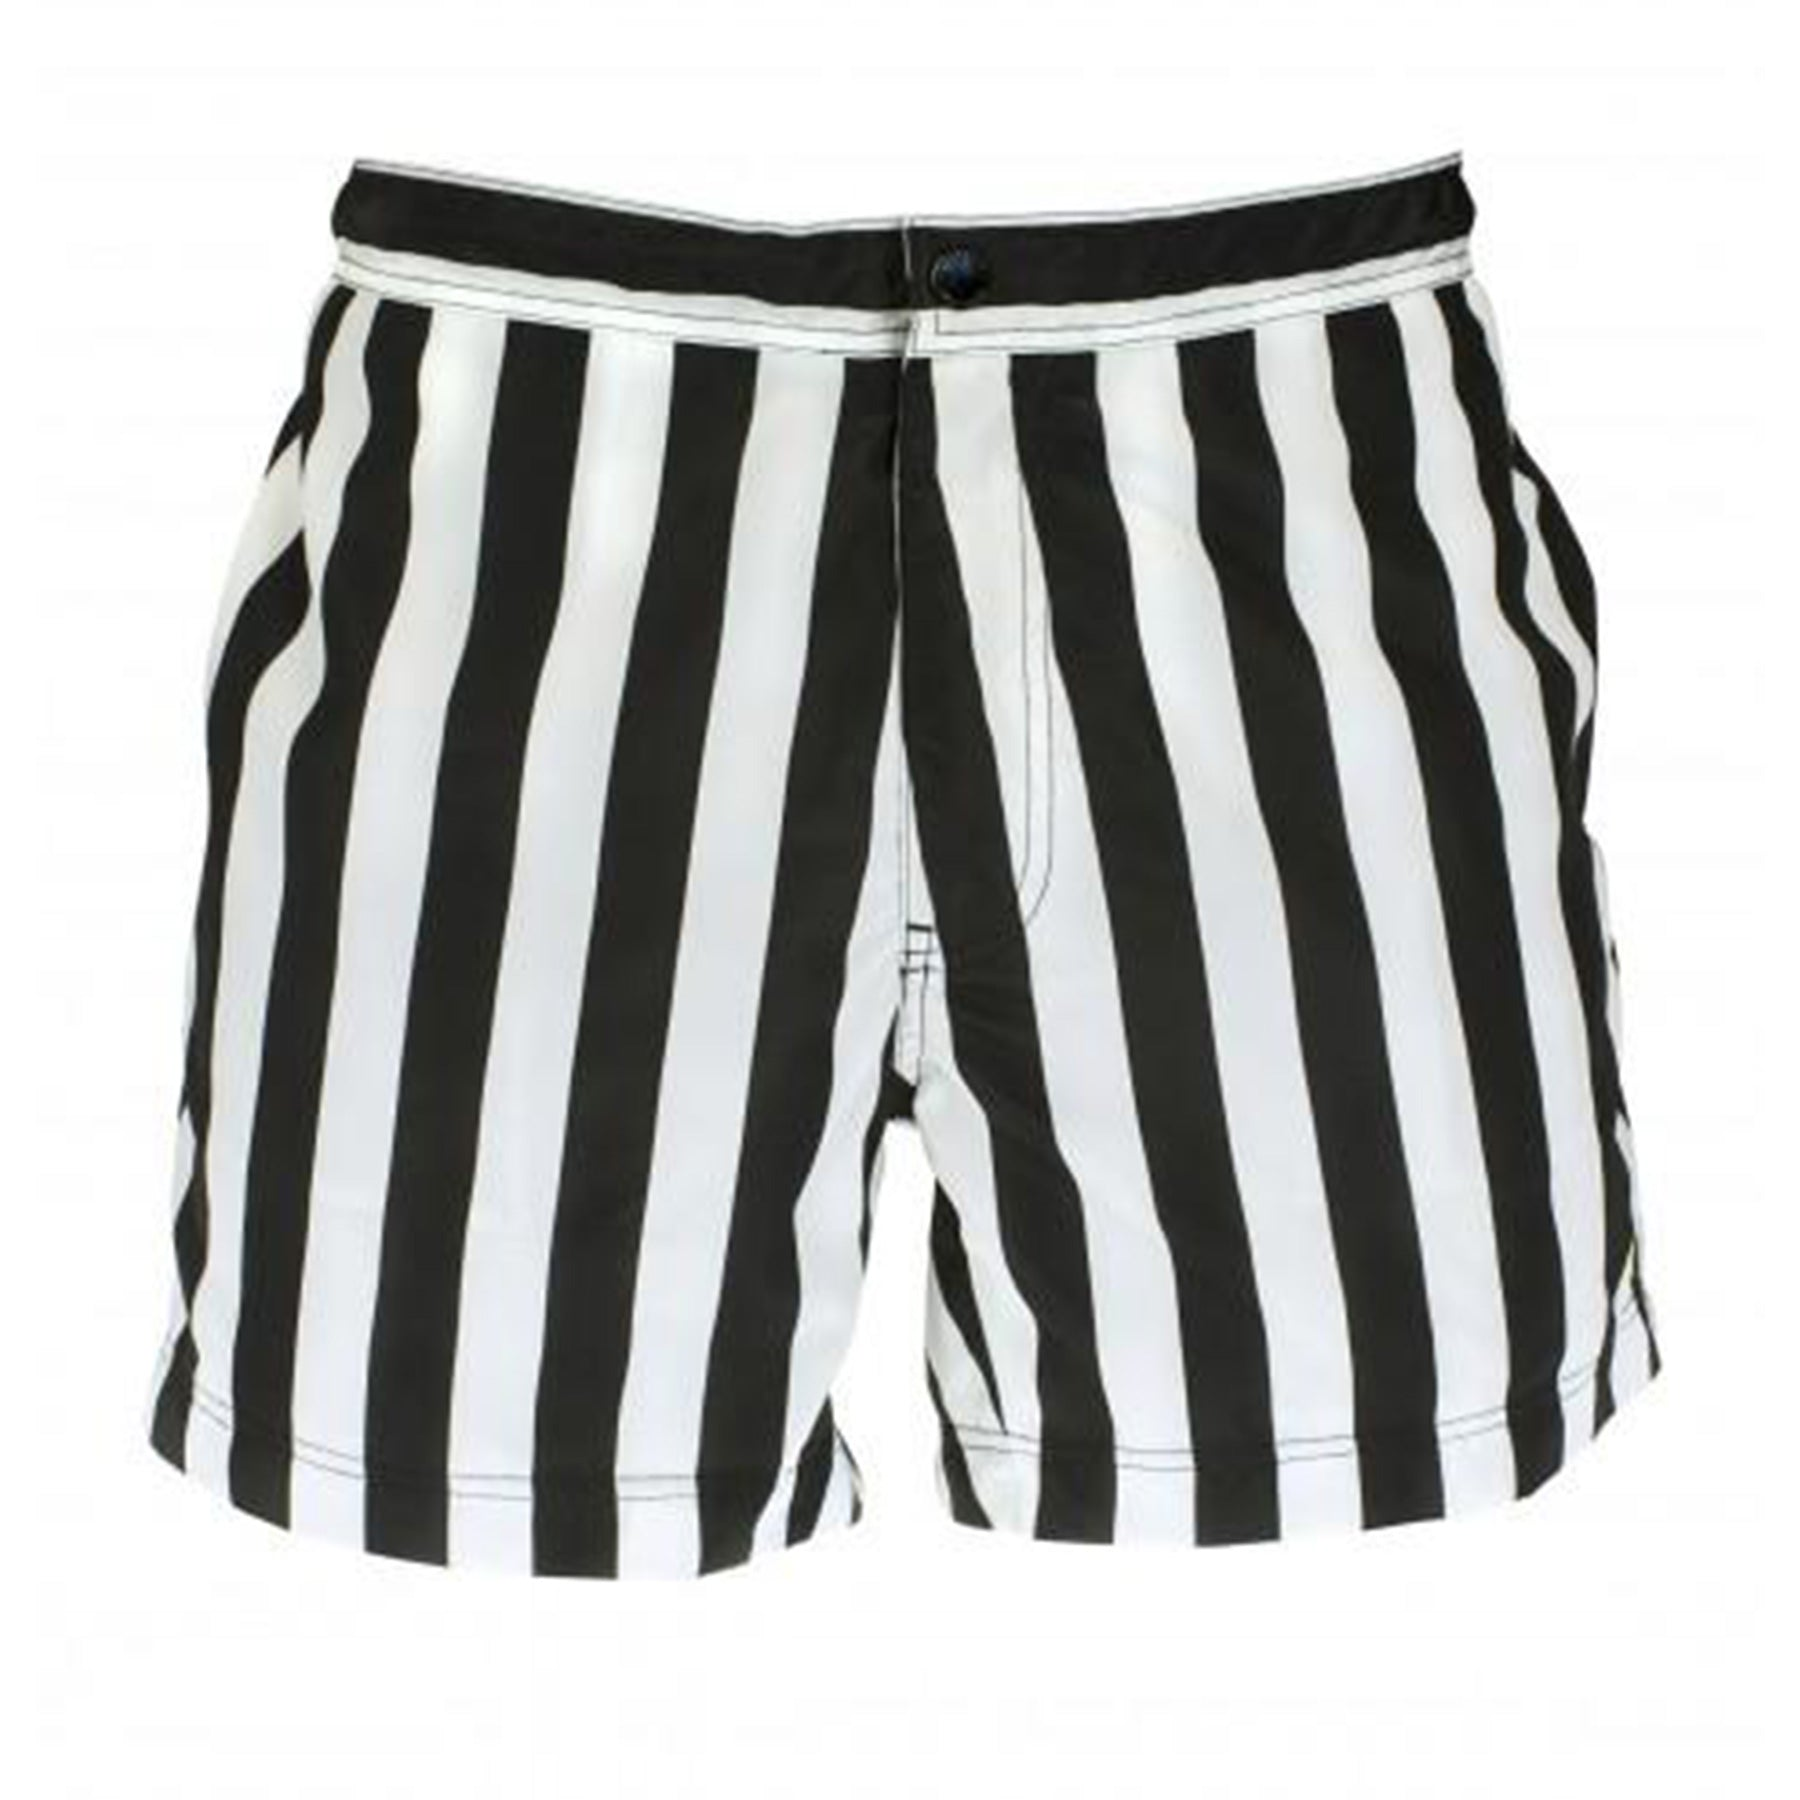 South Cape Black & White Stripe